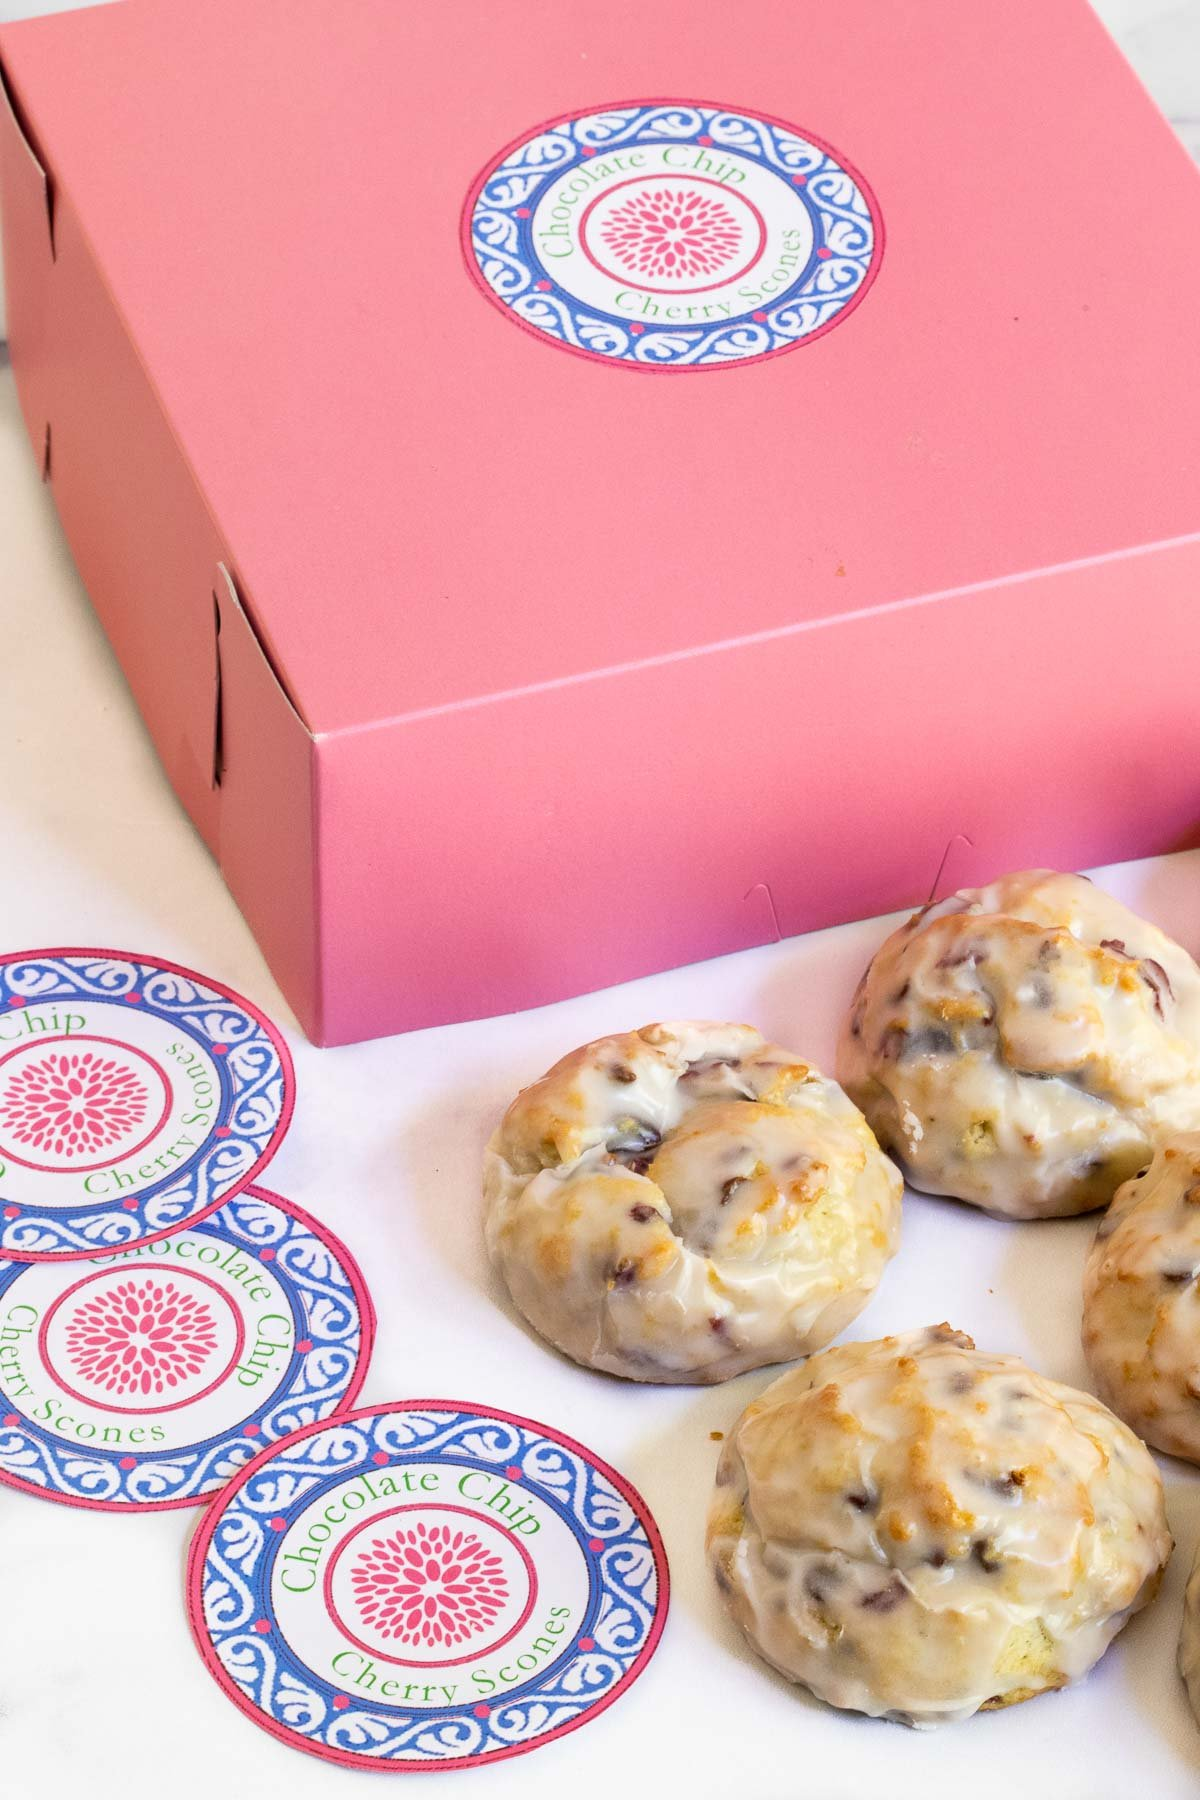 Vertical photo of a pink bakery box with custom Ridiculously Easy Chocolate Chip Scones gift labels on the box and in the foreground.